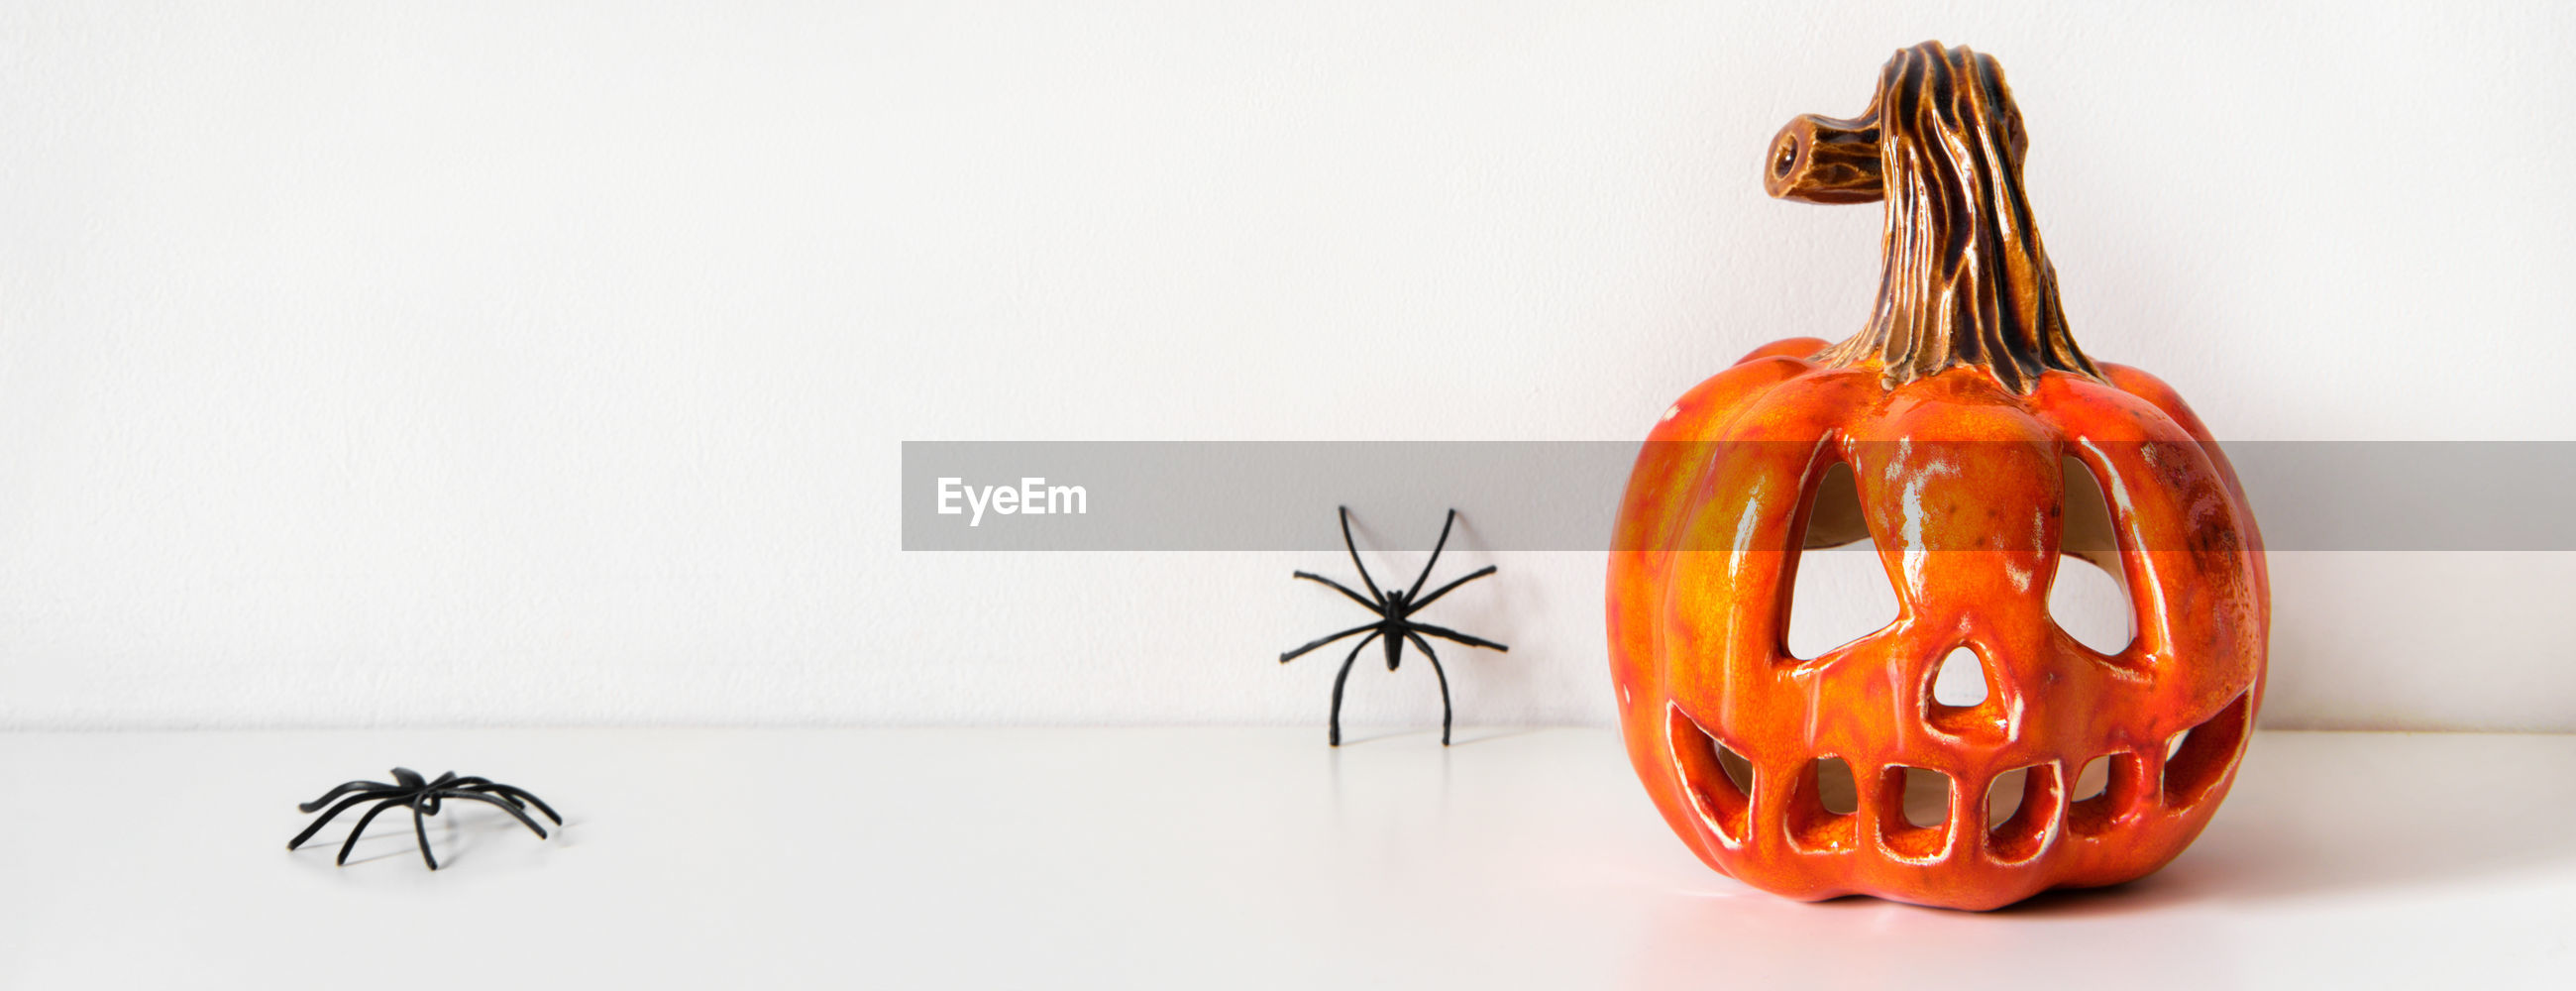 CLOSE-UP OF PUMPKIN AGAINST COLORED BACKGROUND